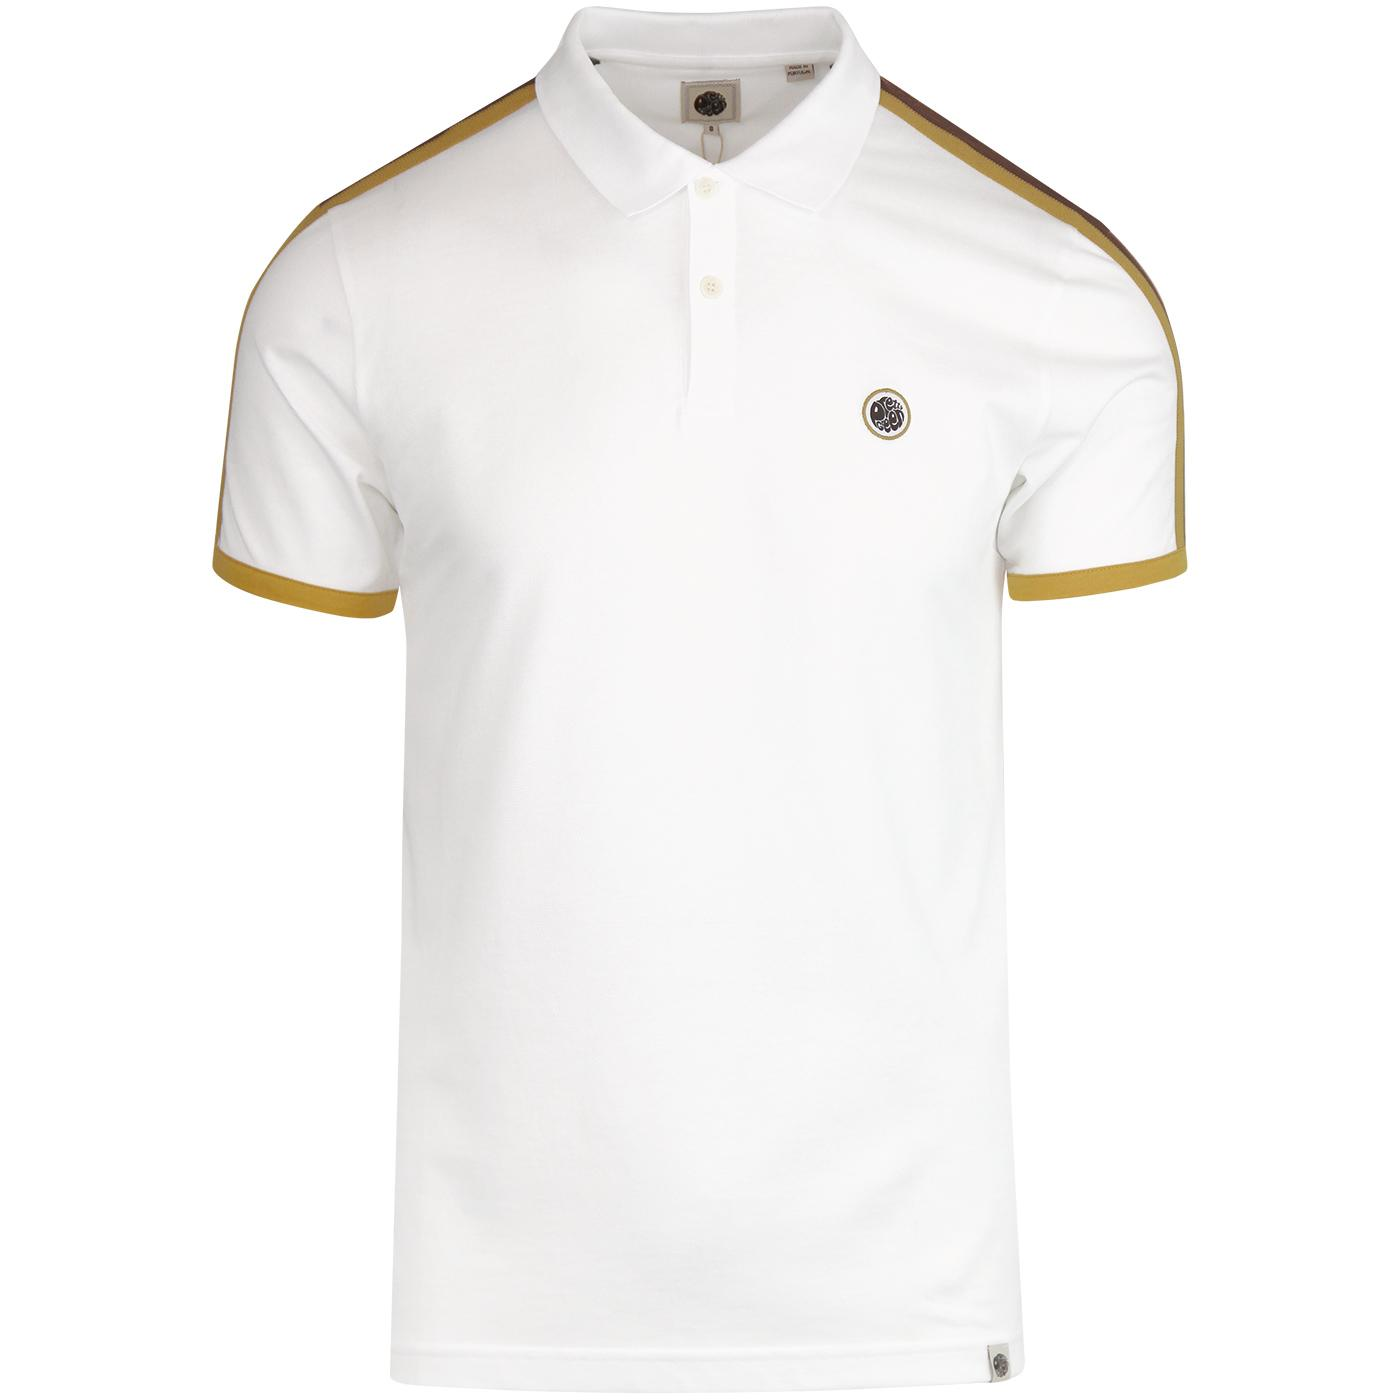 PRETTY GREEN Retro Mod Contrast Panel Polo Top (W)